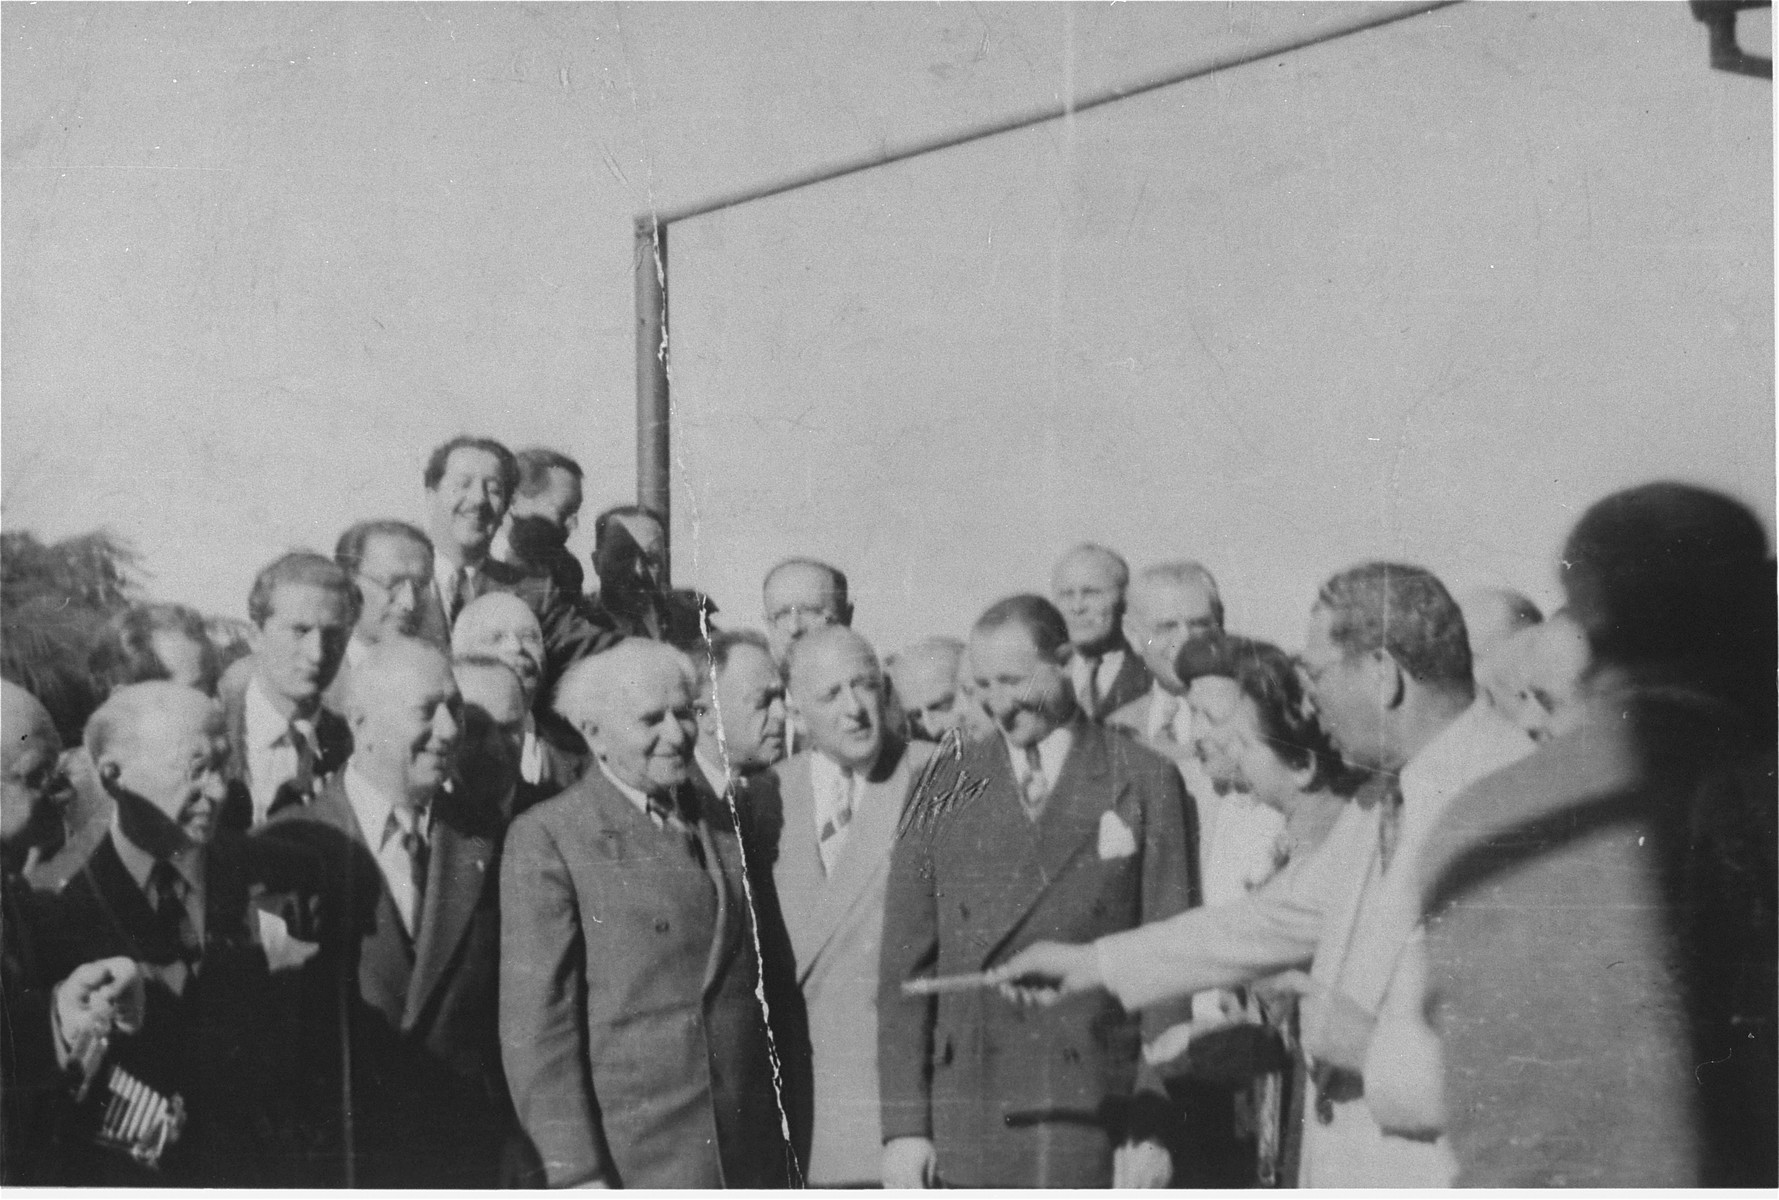 David Ben-Gurion is offered a cigar at a meeting with other Jewish leaders in Haifa during the transfer of Exodus 1947 passengers.